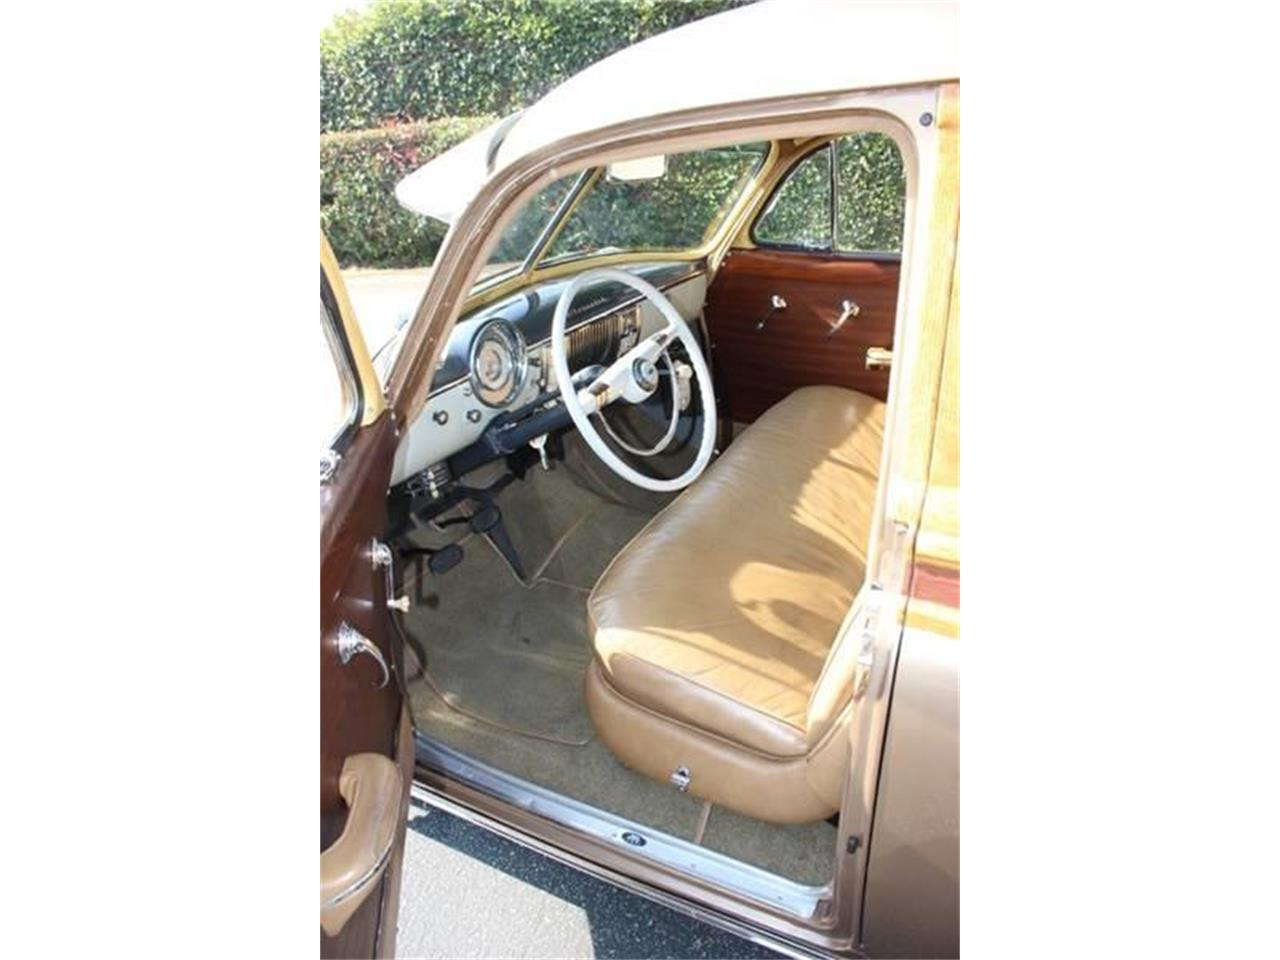 1950 Chevrolet Styleline Deluxe for sale in La Verne, CA – photo 24